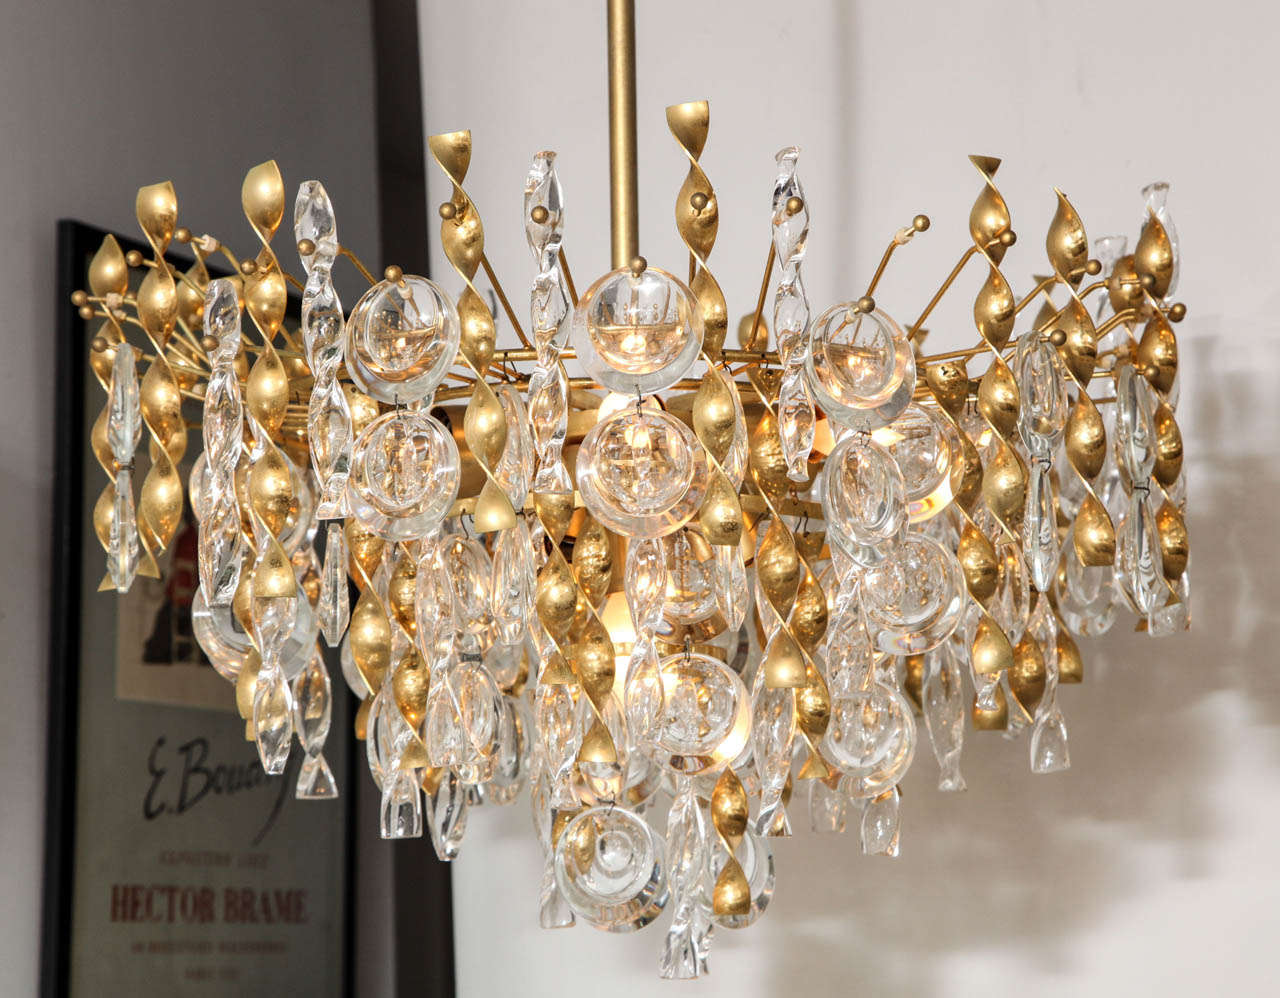 Sciolari Crystal Disc Pendant Chandelier with Glass and Brass Gold Twists For Sale 2